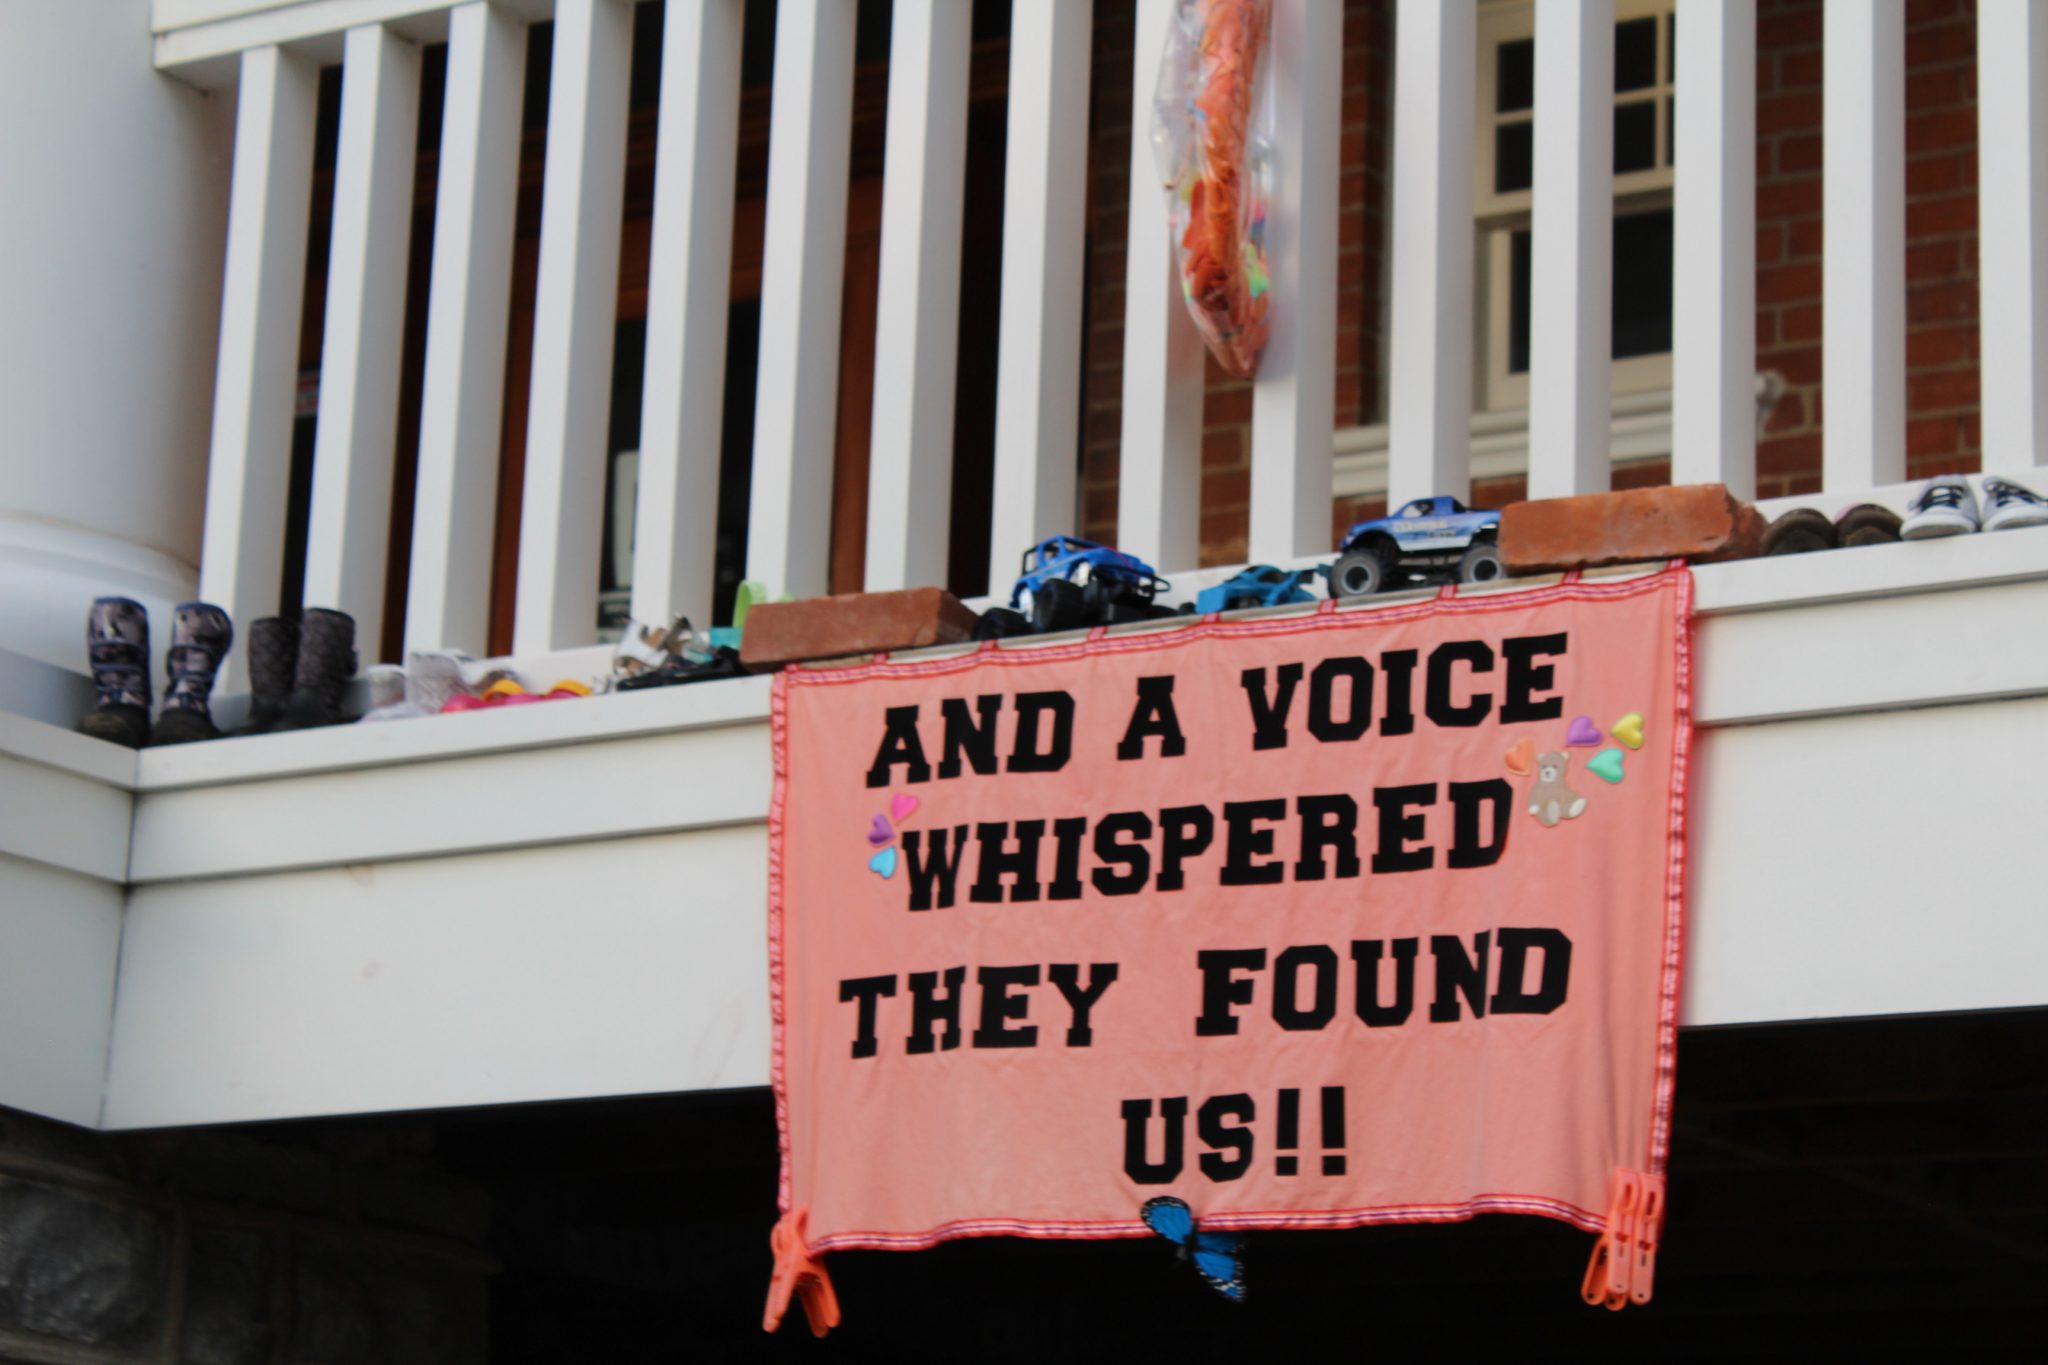 """An orange sign reads """"And a voice whispered 'they found us!!'"""""""